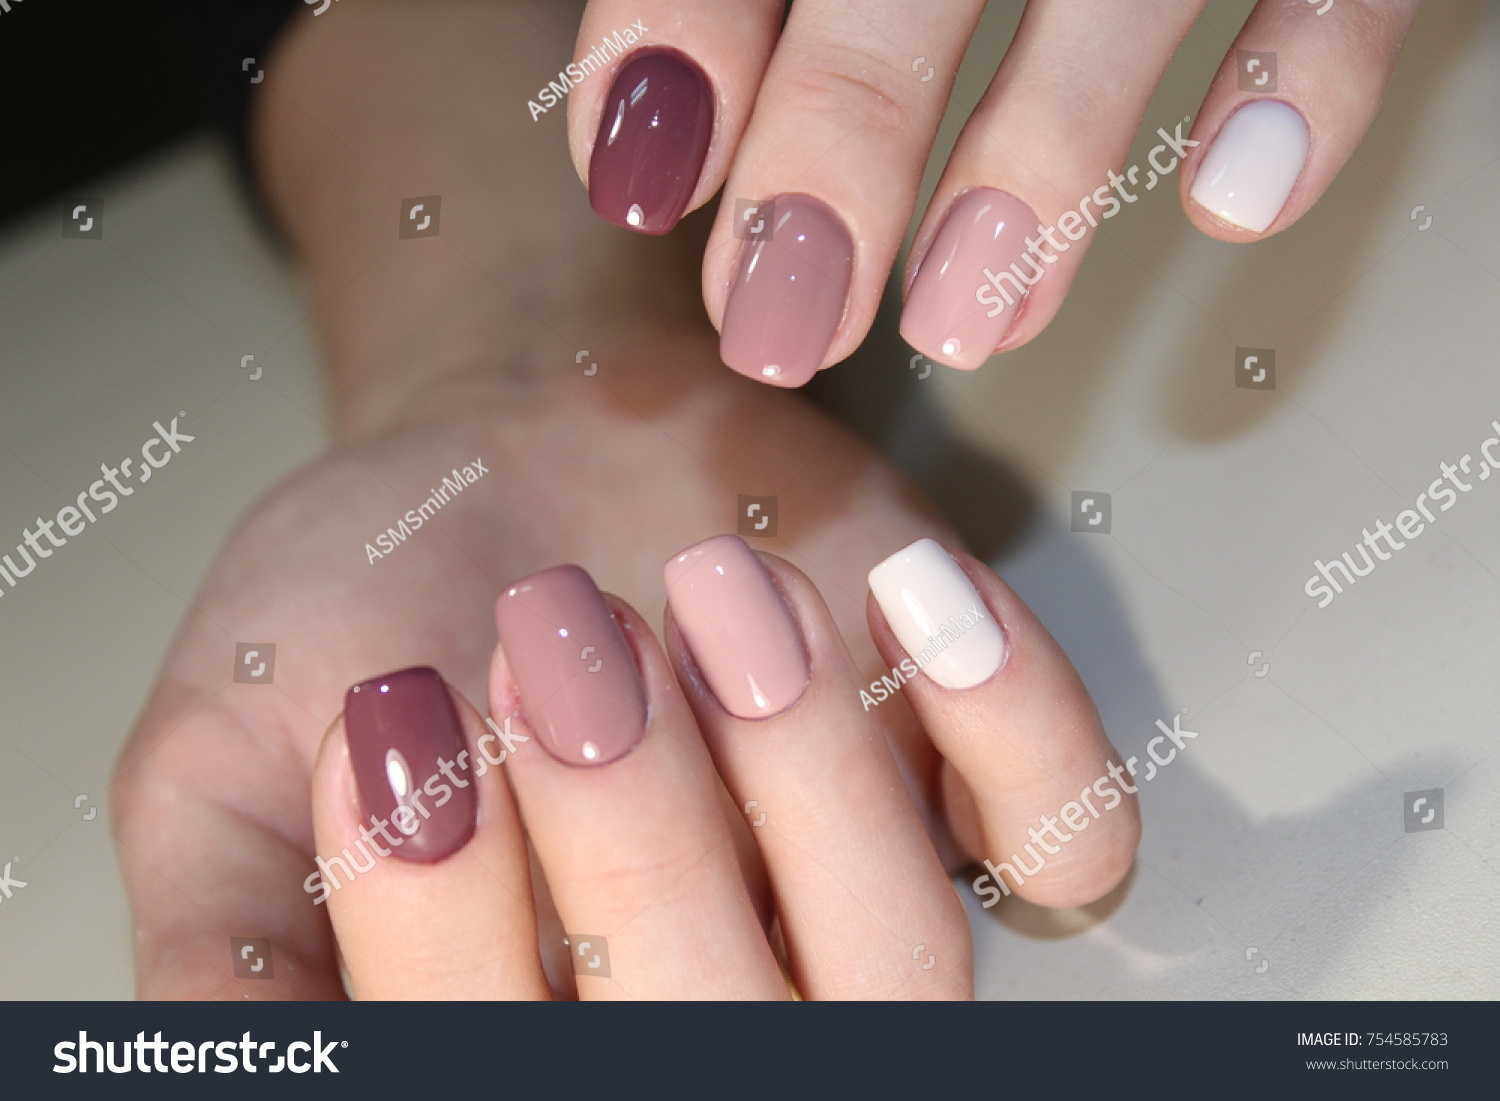 Nail Art Manicure Beauty Hands Trendy Stock Photo (Royalty Free ...